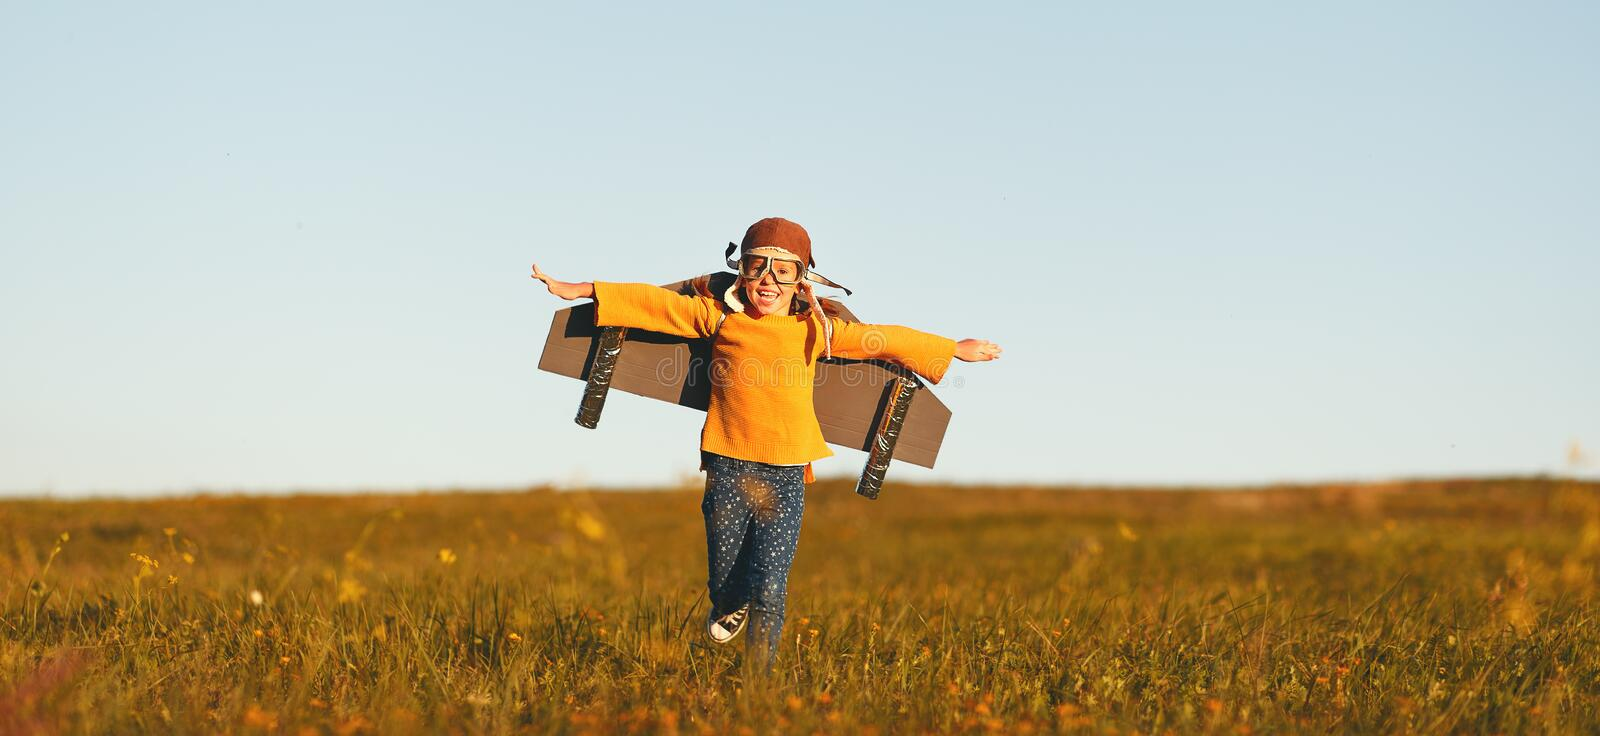 Child pilot aviator with wings of airplane dreams of traveling in summer  at sunset. Child pilot aviator with wings of airplane dreams of traveling in summer in royalty free stock photo